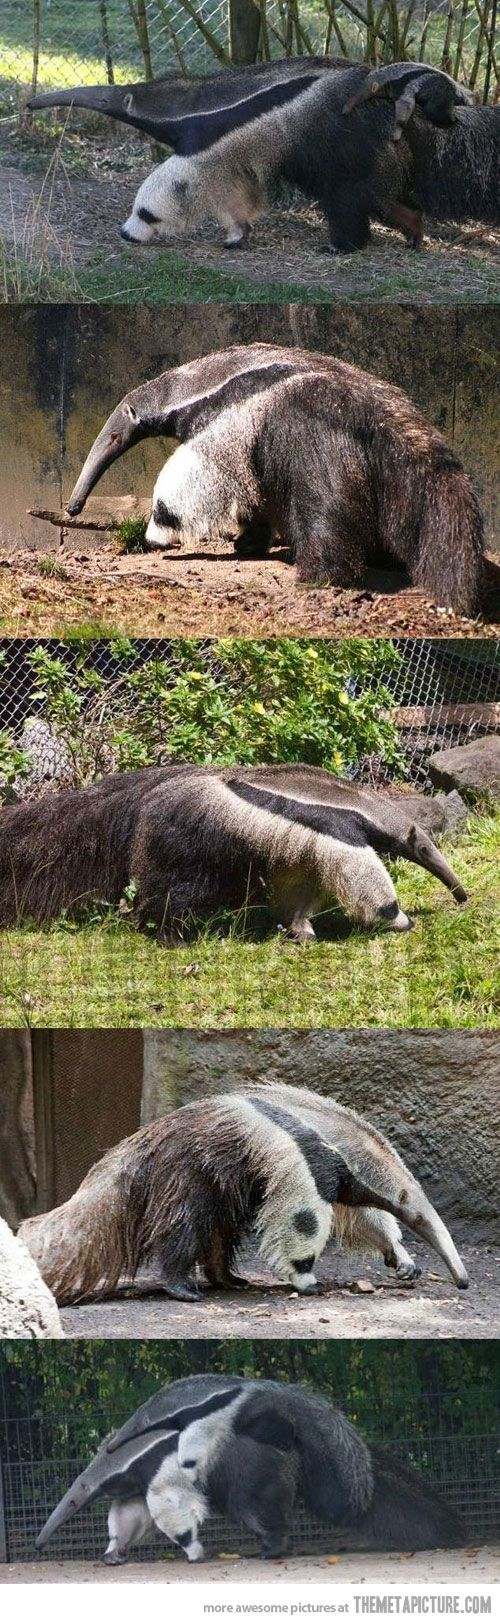 Giant anteater legs look like pandas… like look at me, psh I walk all over pandas.